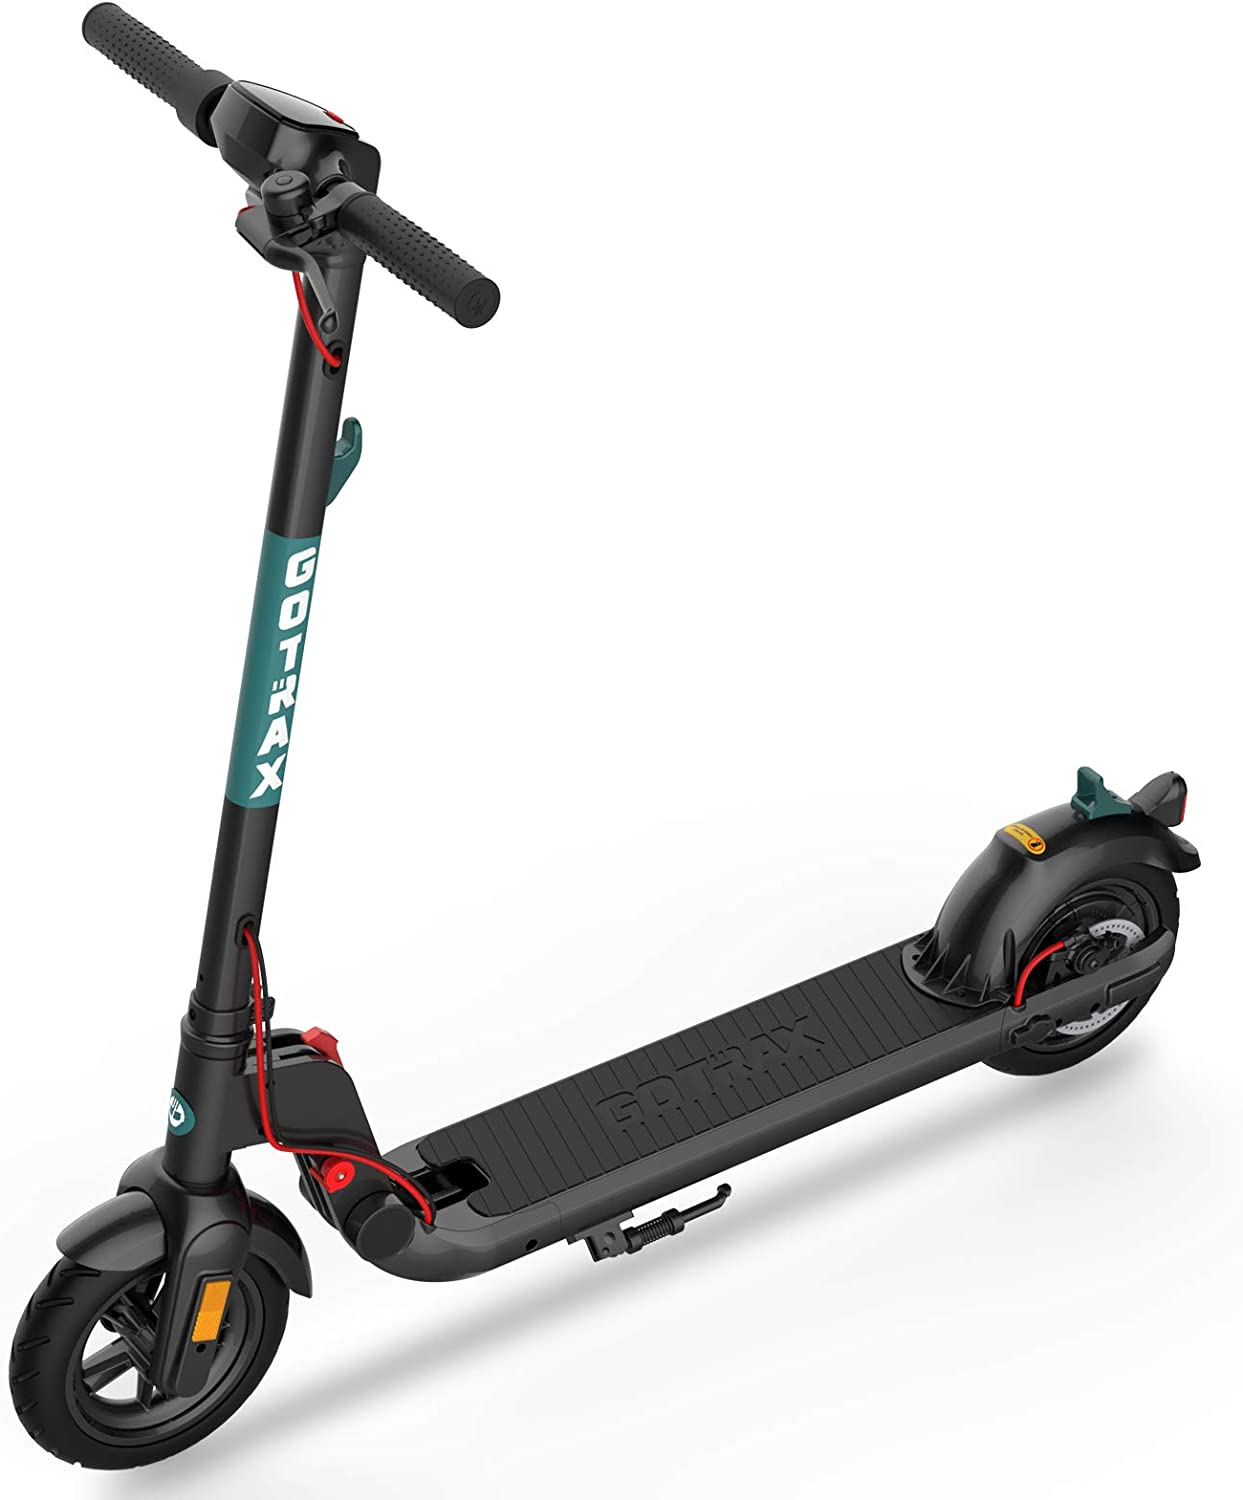 Top 10 Best Electric Scooters Under 300 [Buying Guide Reviews - 2021] 2